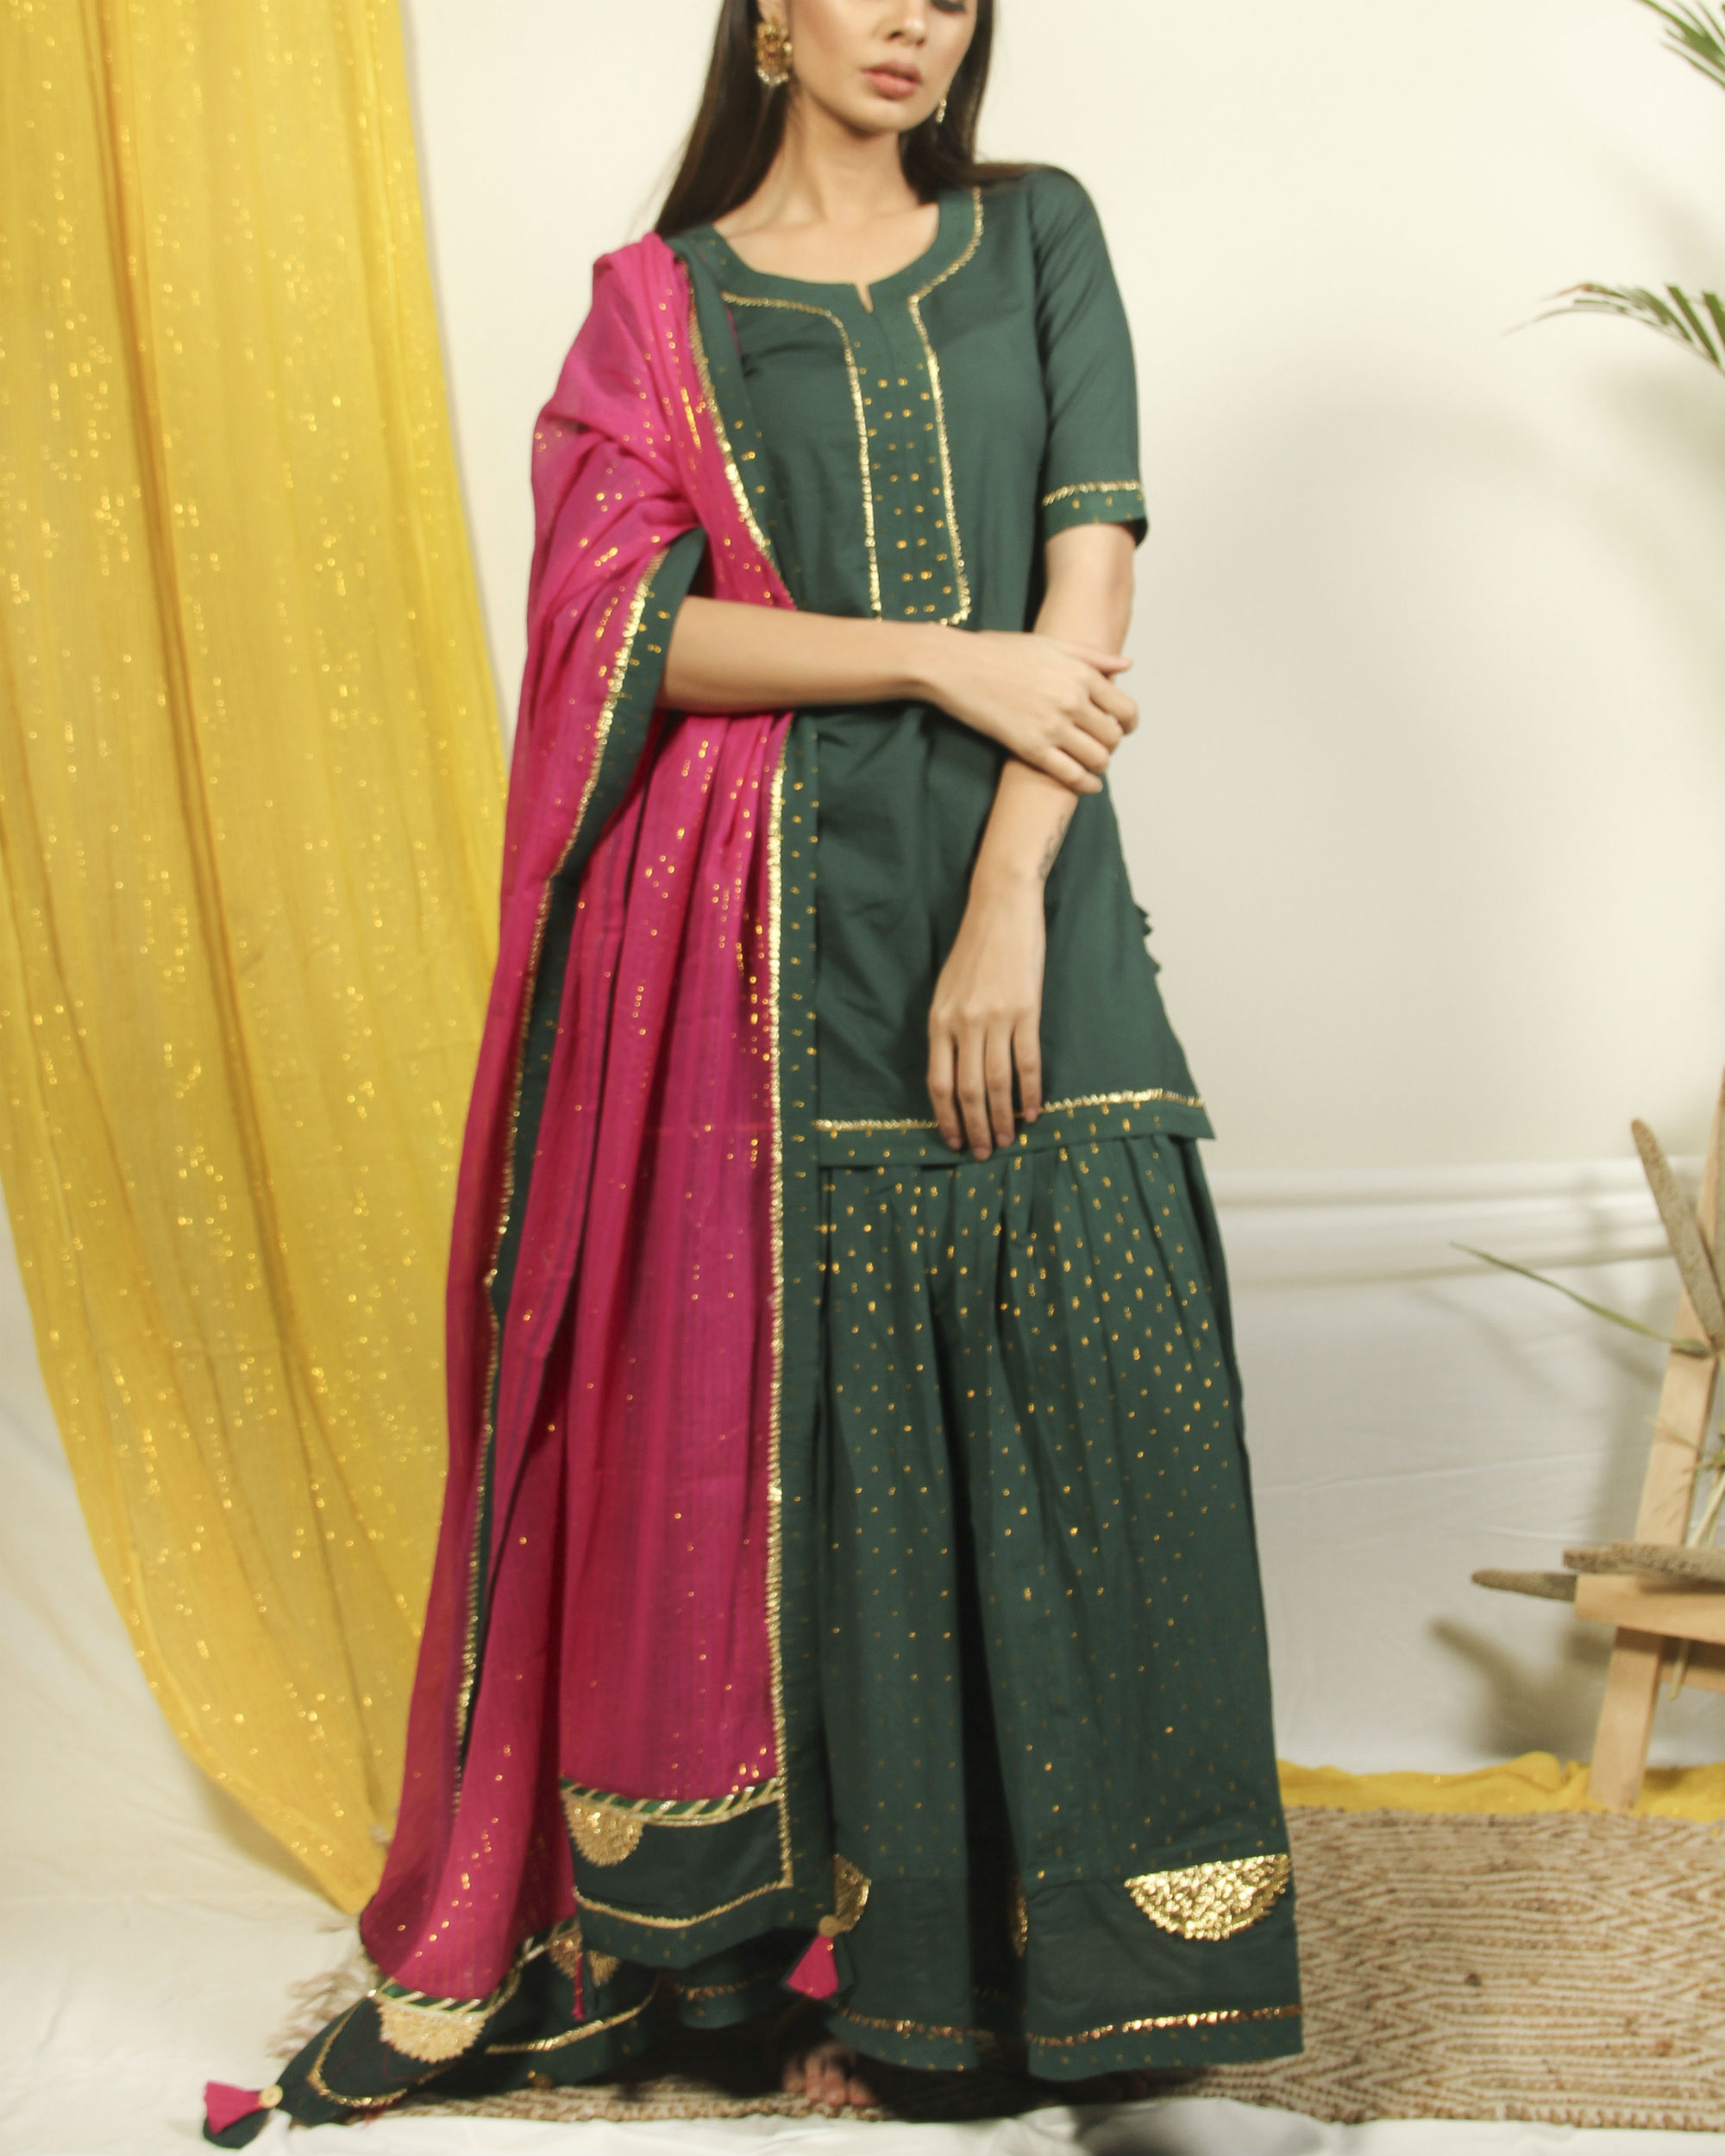 Pine green golden kurta lehenga set